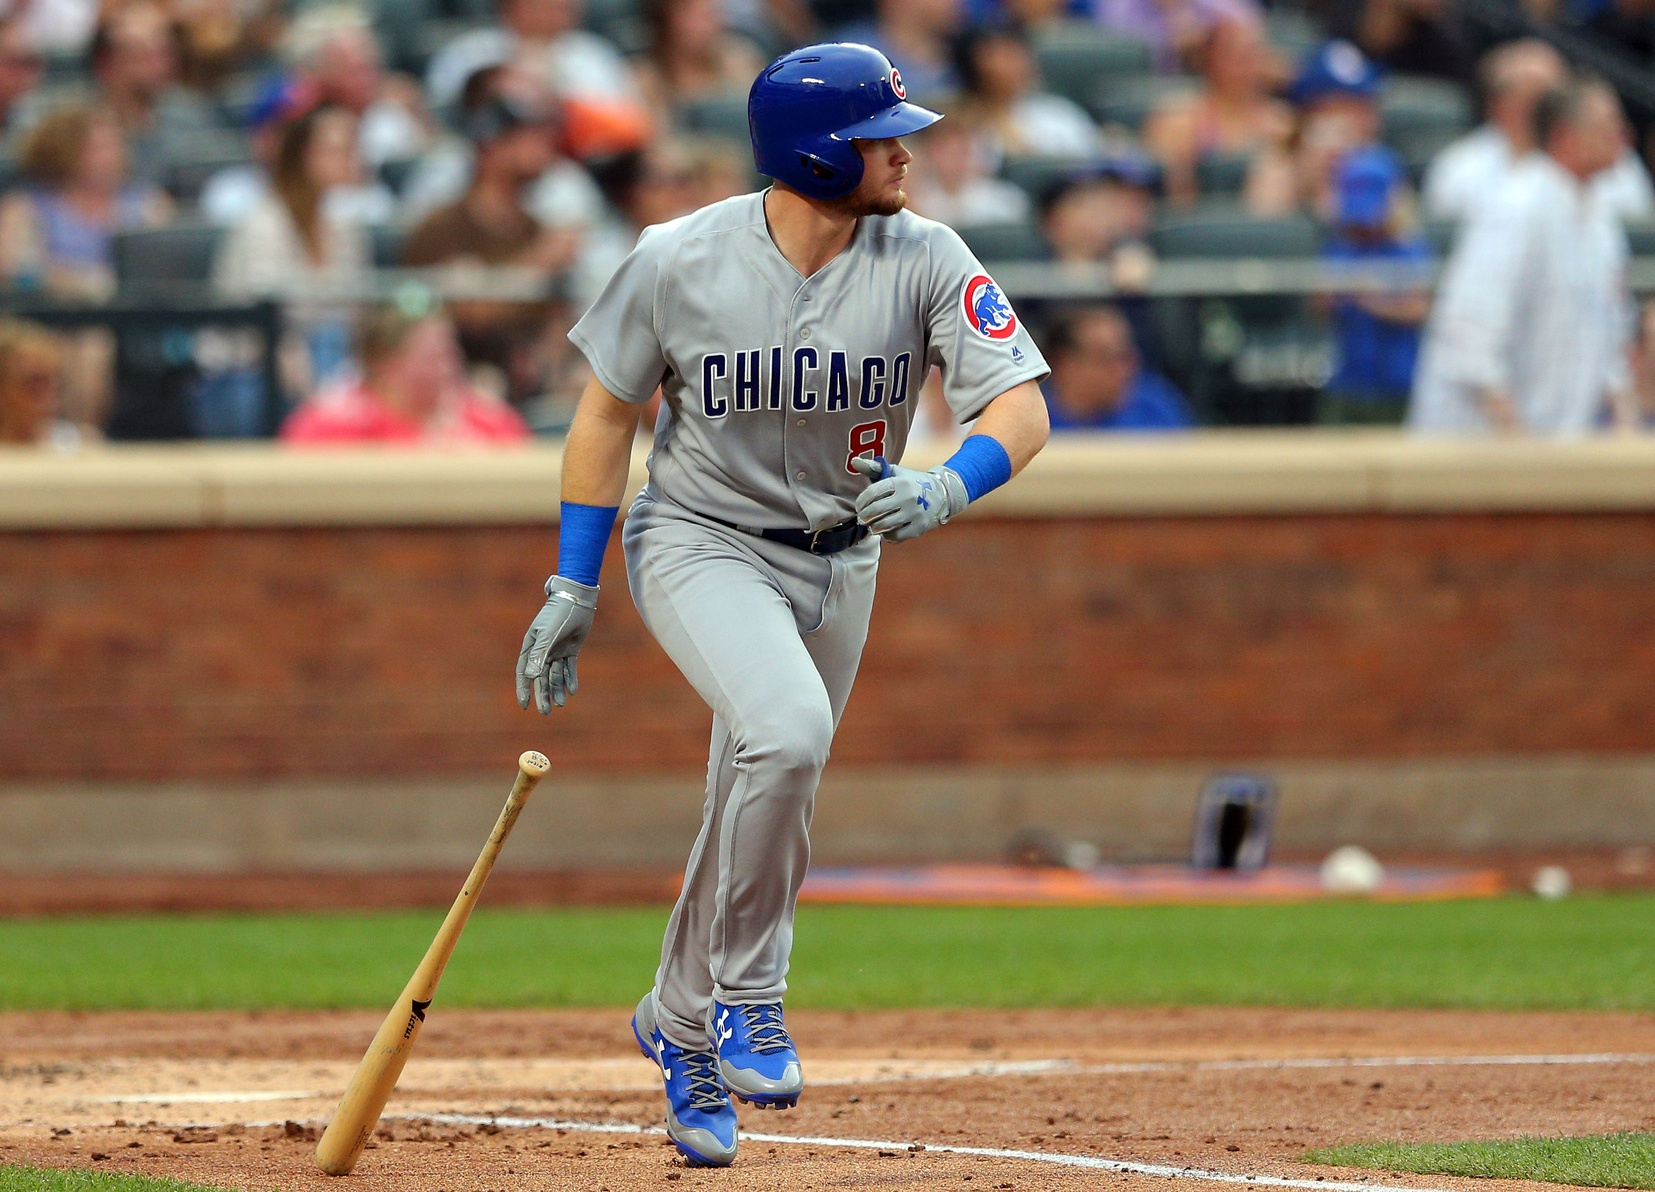 Batting leadoff, Rizzo homers as Cubs roll